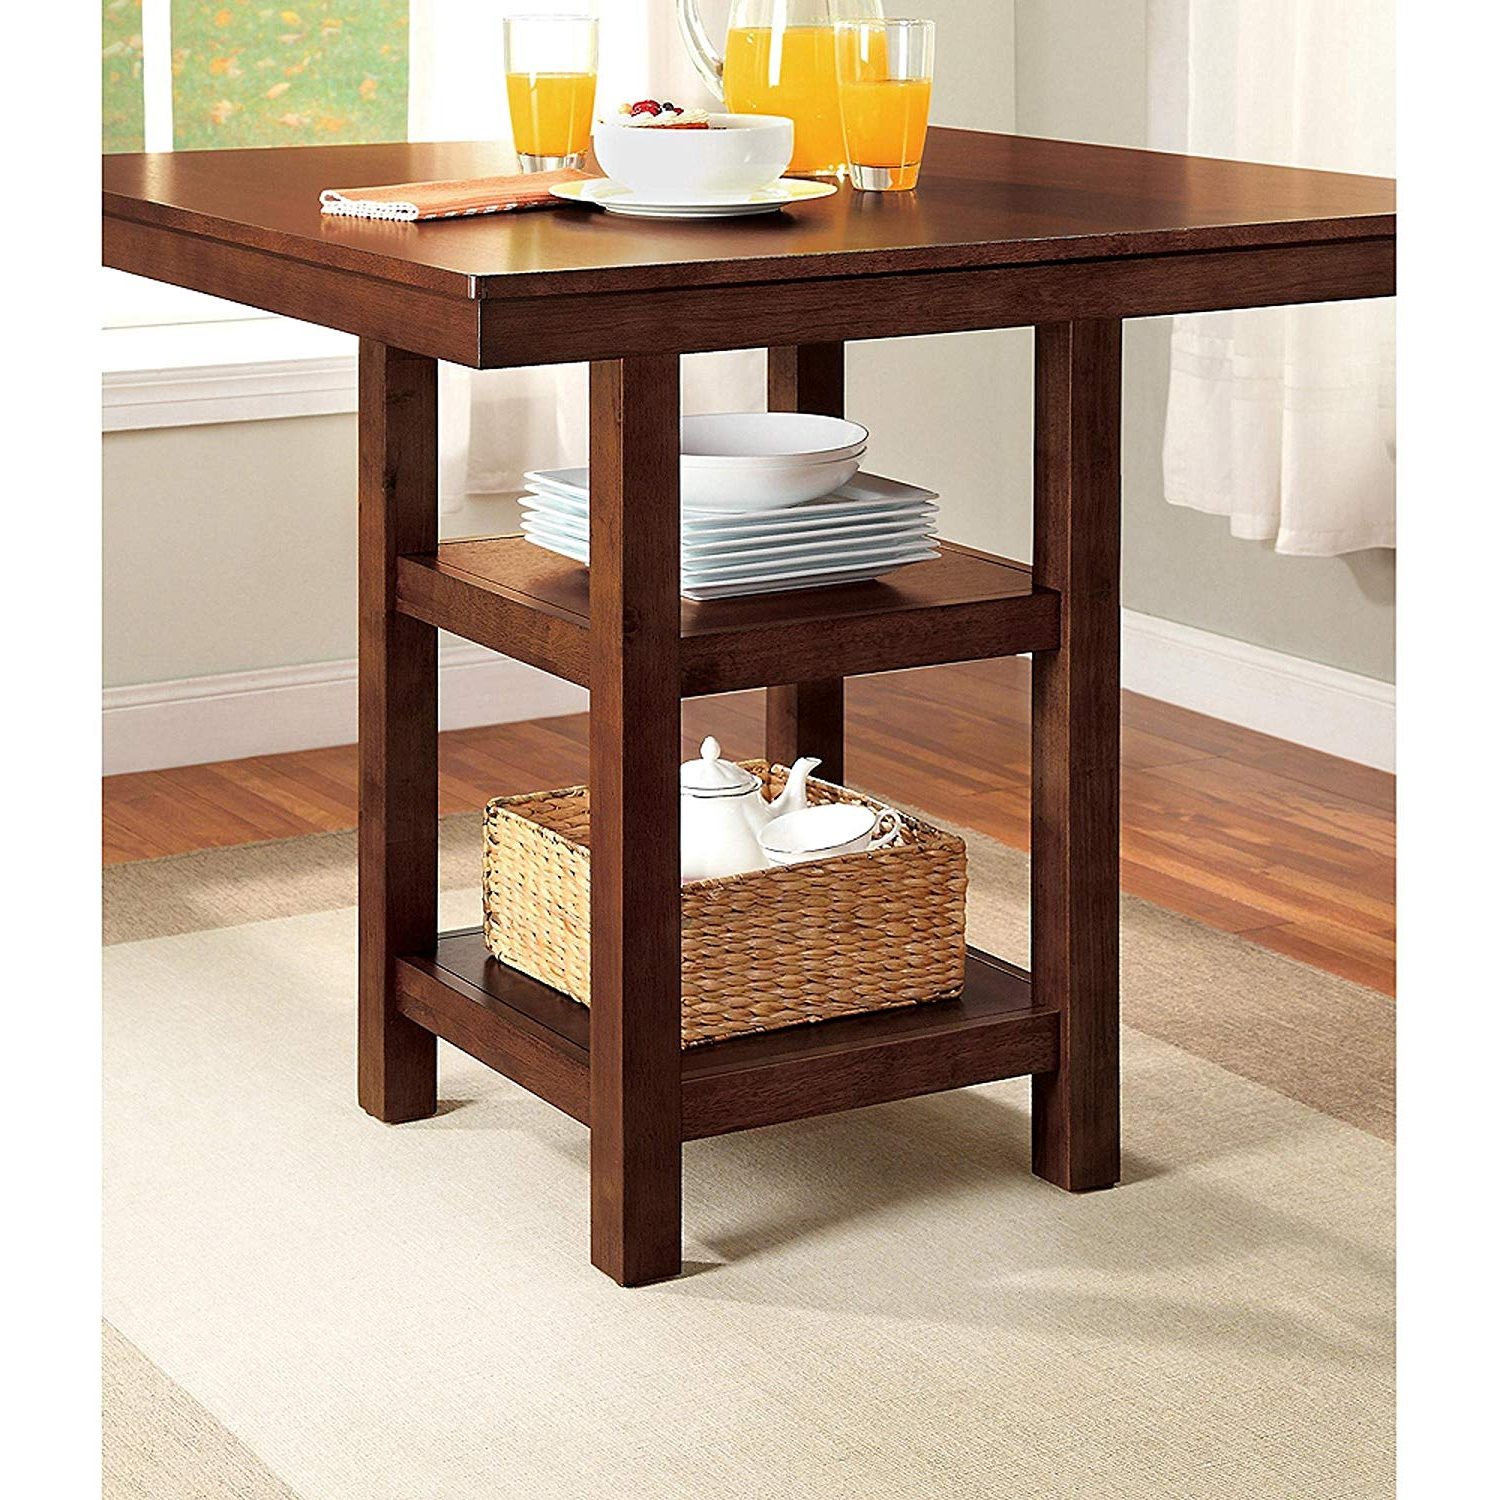 Denzel 5 Piece Counter Height Breakfast Nook Dining Sets Pertaining To Preferred Amazon – 5 Piece Dalton Park Counter Height Dining Set, Mocha (View 6 of 25)